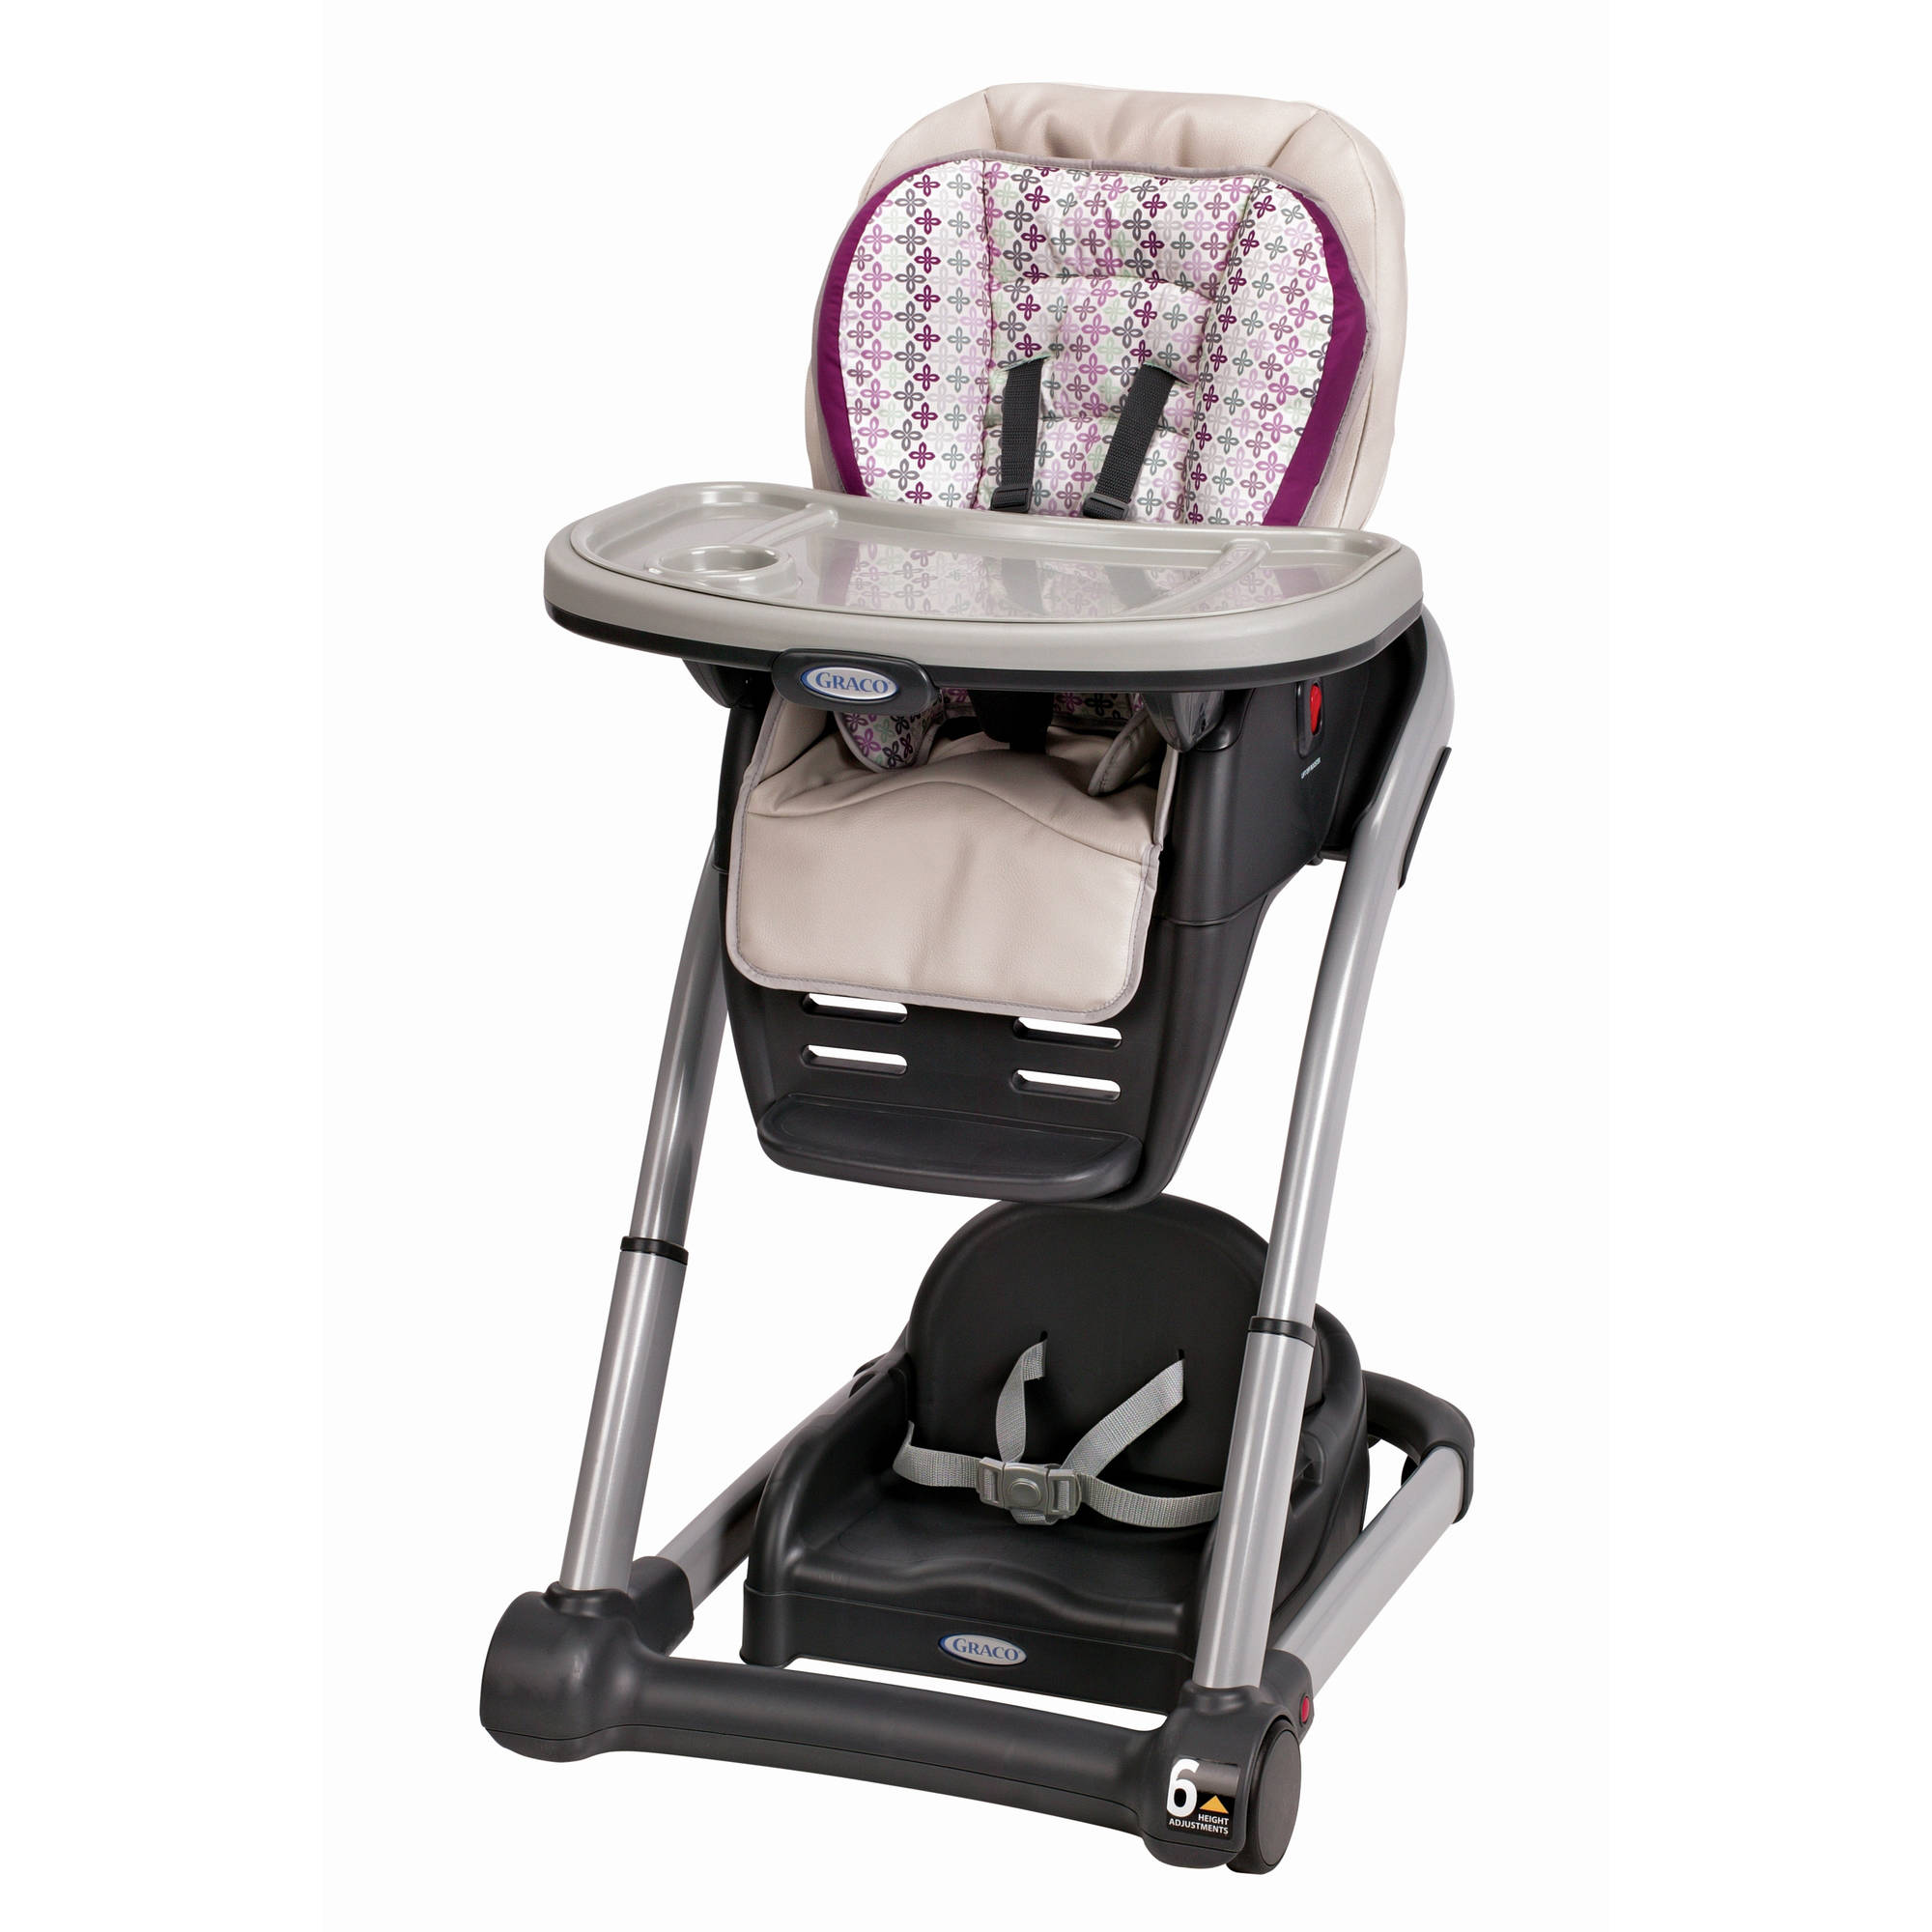 Graco Blossom 4-in-1 High Chair, Nyssa